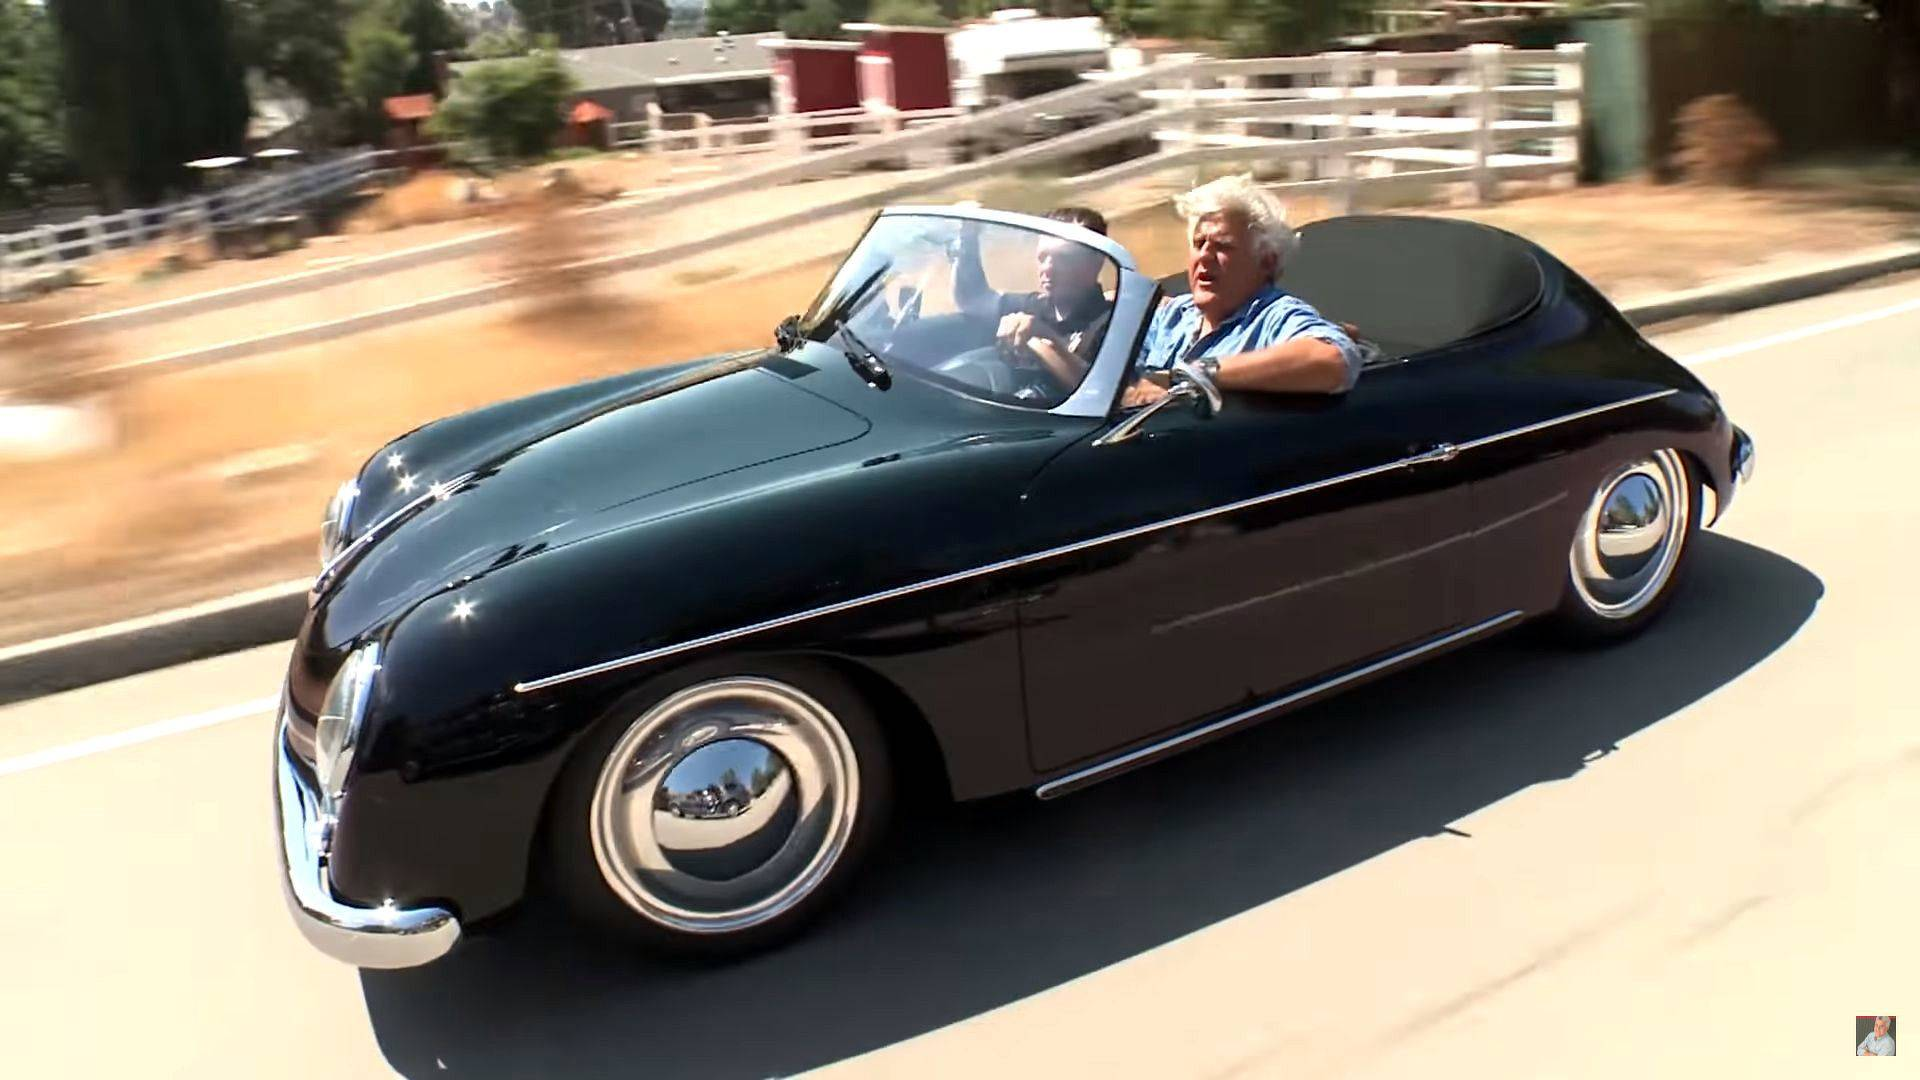 West Coast Customs Cars For Sale >> Porsche Cayman Does Its Best 356 Impression In Jay Leno's Garage